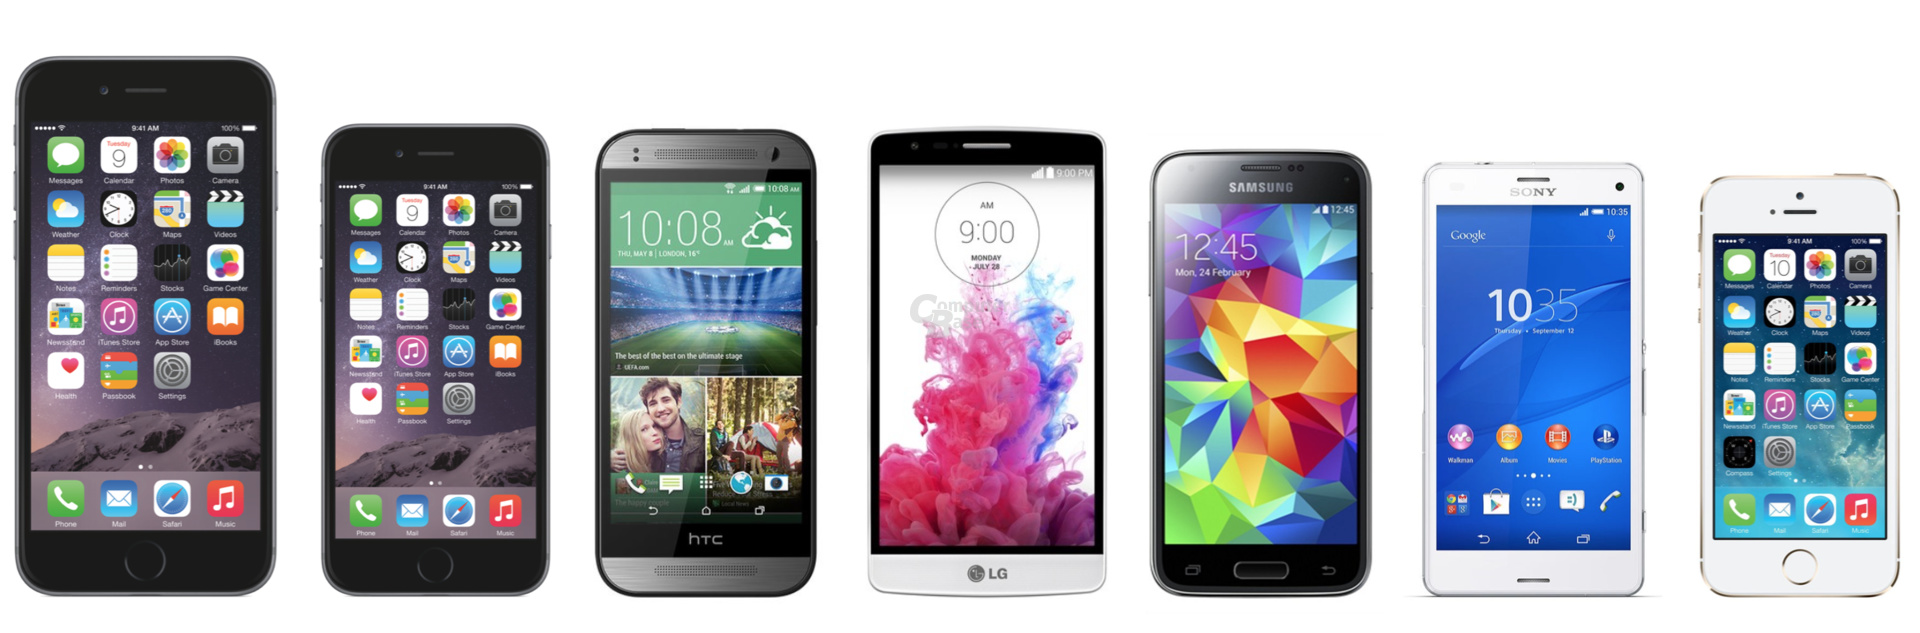 """v.l.n.r.: iPhone 6 (Plus), HTC One mini 2, G3 """"s"""", Galaxy S5 mini, Xperia Z3 compact, iPhone 5S"""